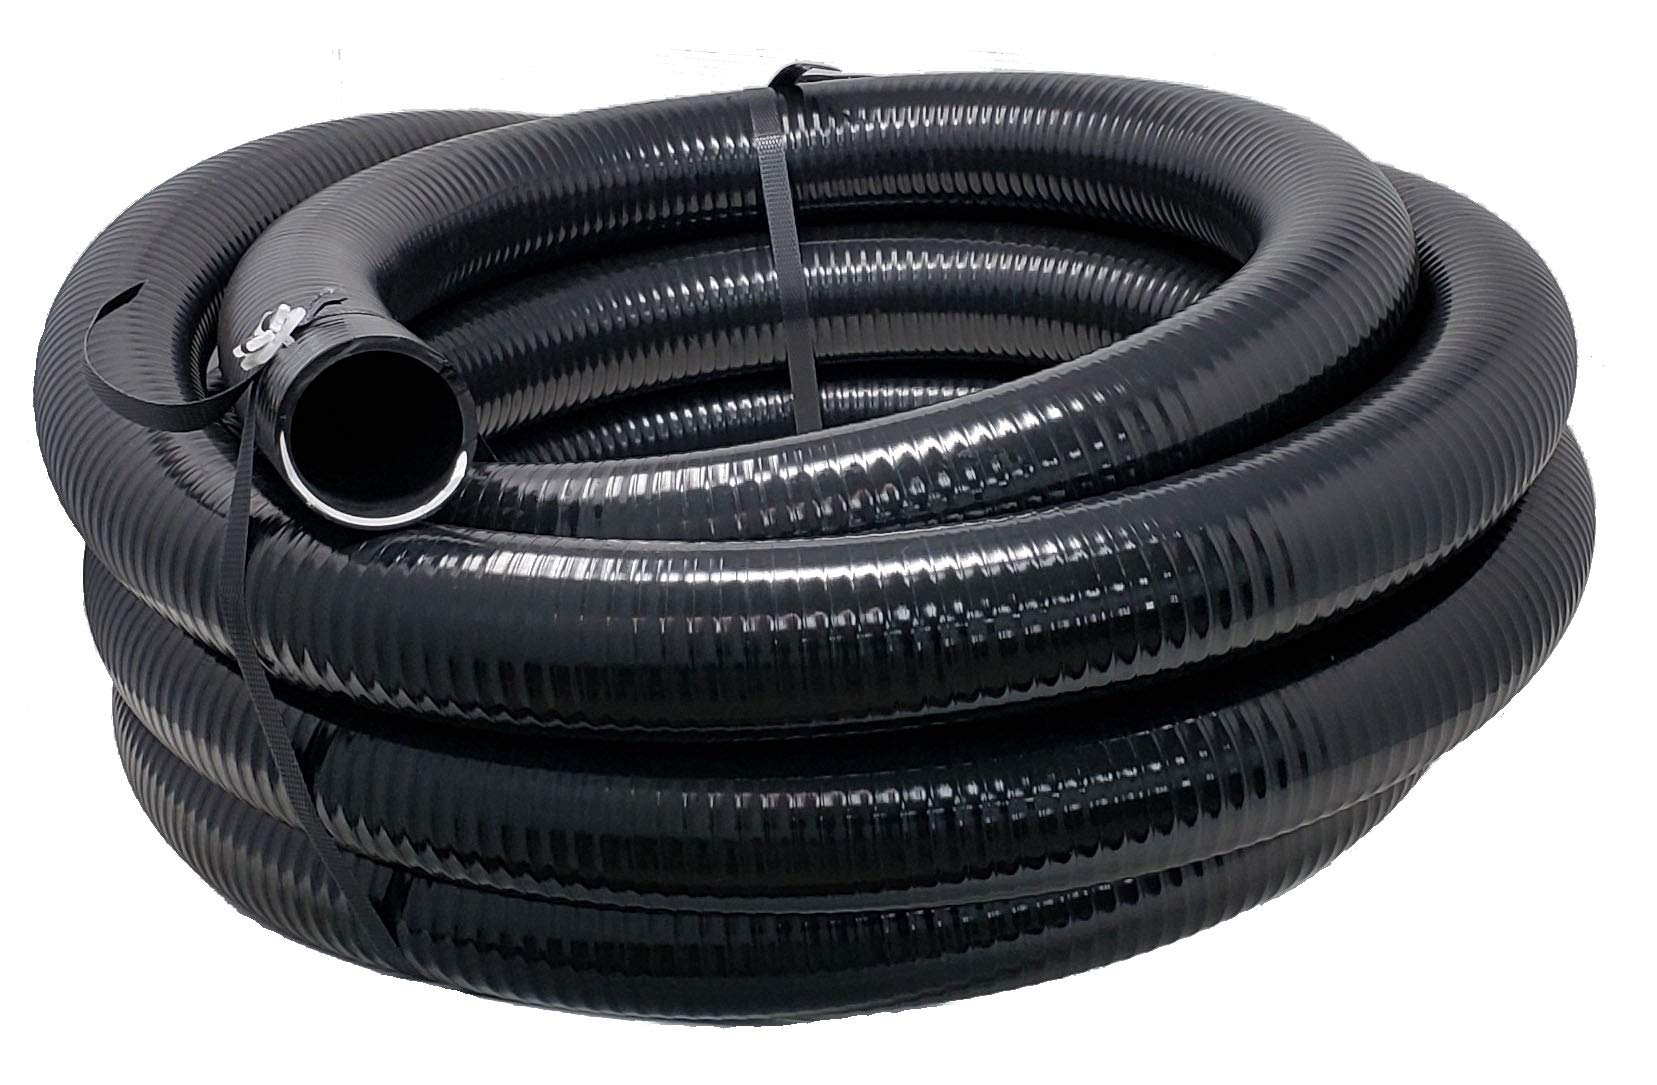 Sealproof Flexible PVC Pipe, Pond Hose, Pool and Spa Tubing, Black, 2 Inch Dia, 25 FT Length, Made in USA by Sealproof